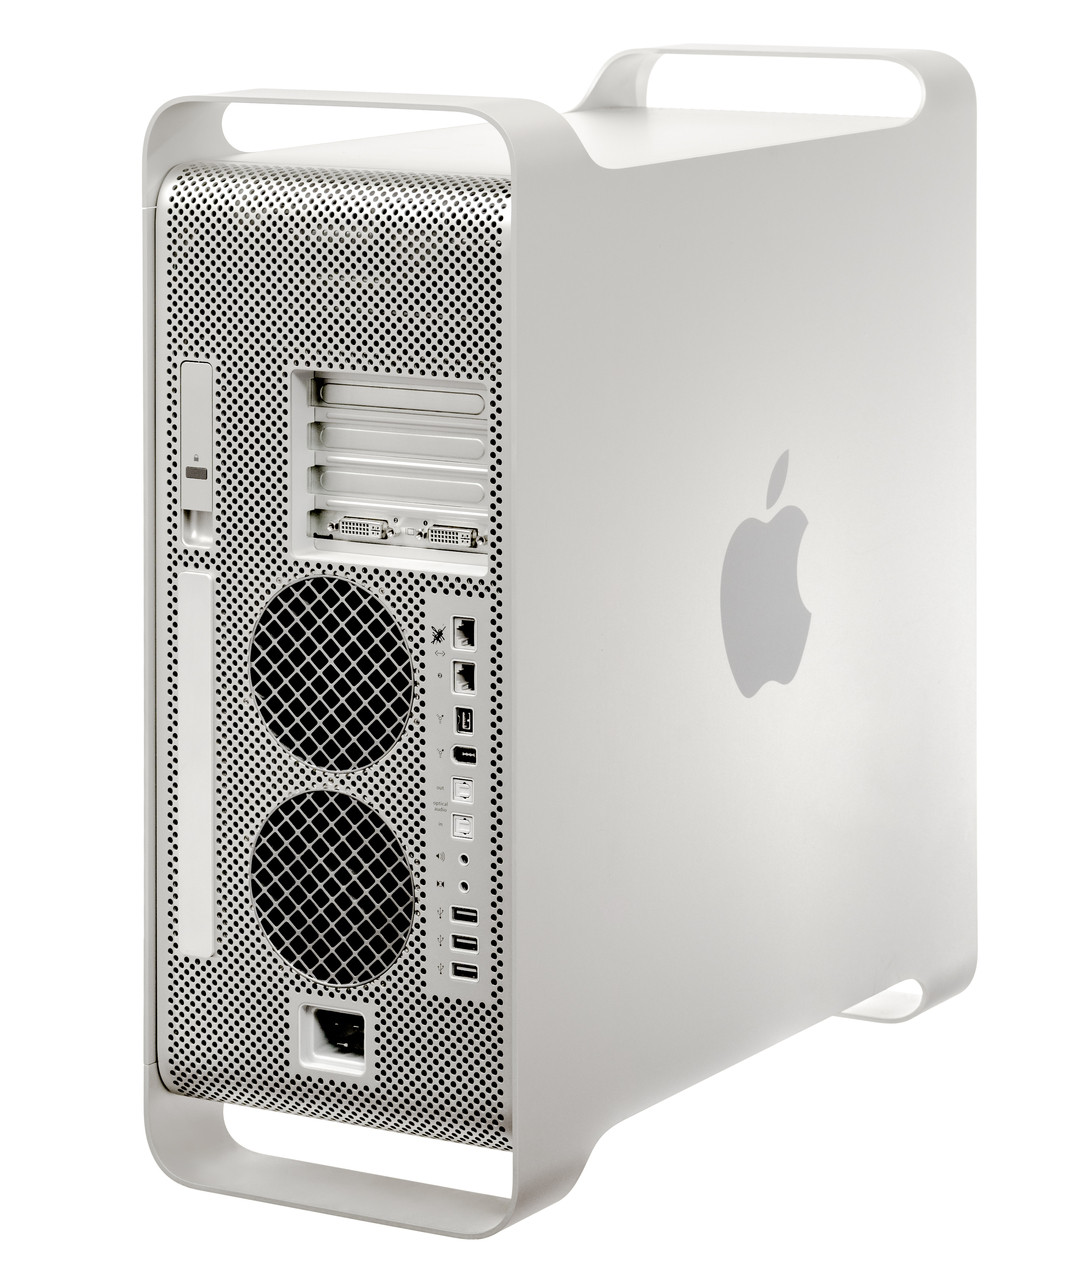 Apple-Power-Macintosh-A1047-G5-8500E - back